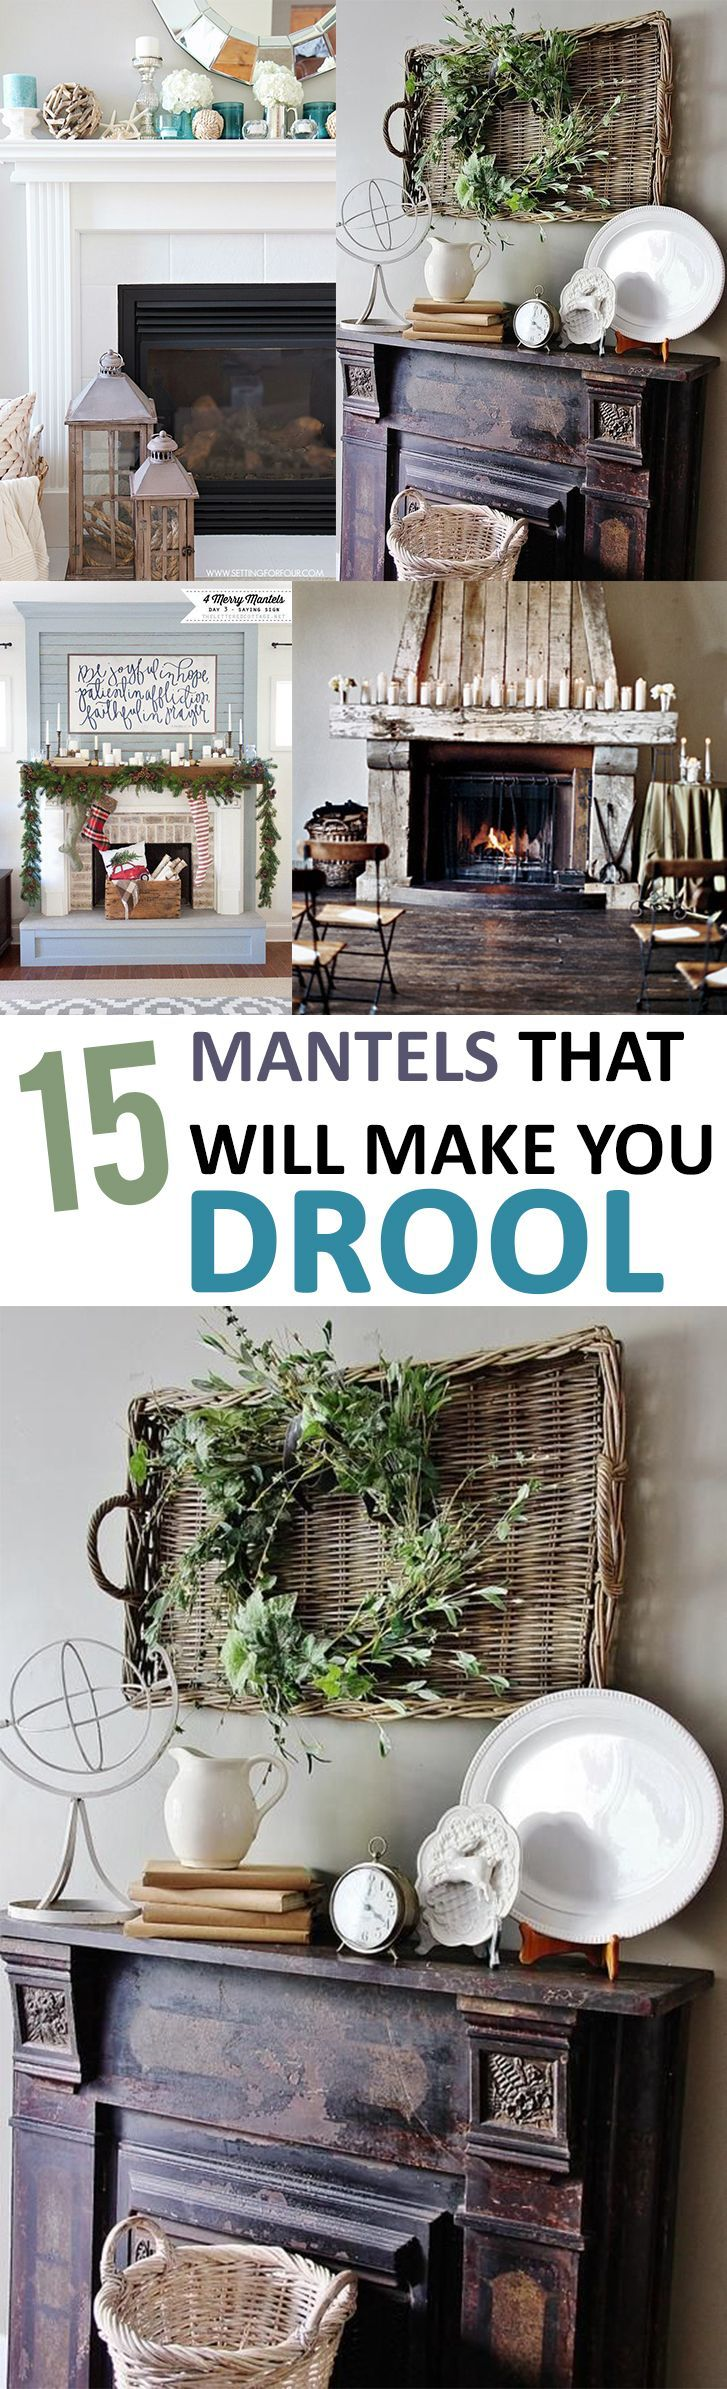 Get your creative juices flowing with these incredible mantel decor ideas.